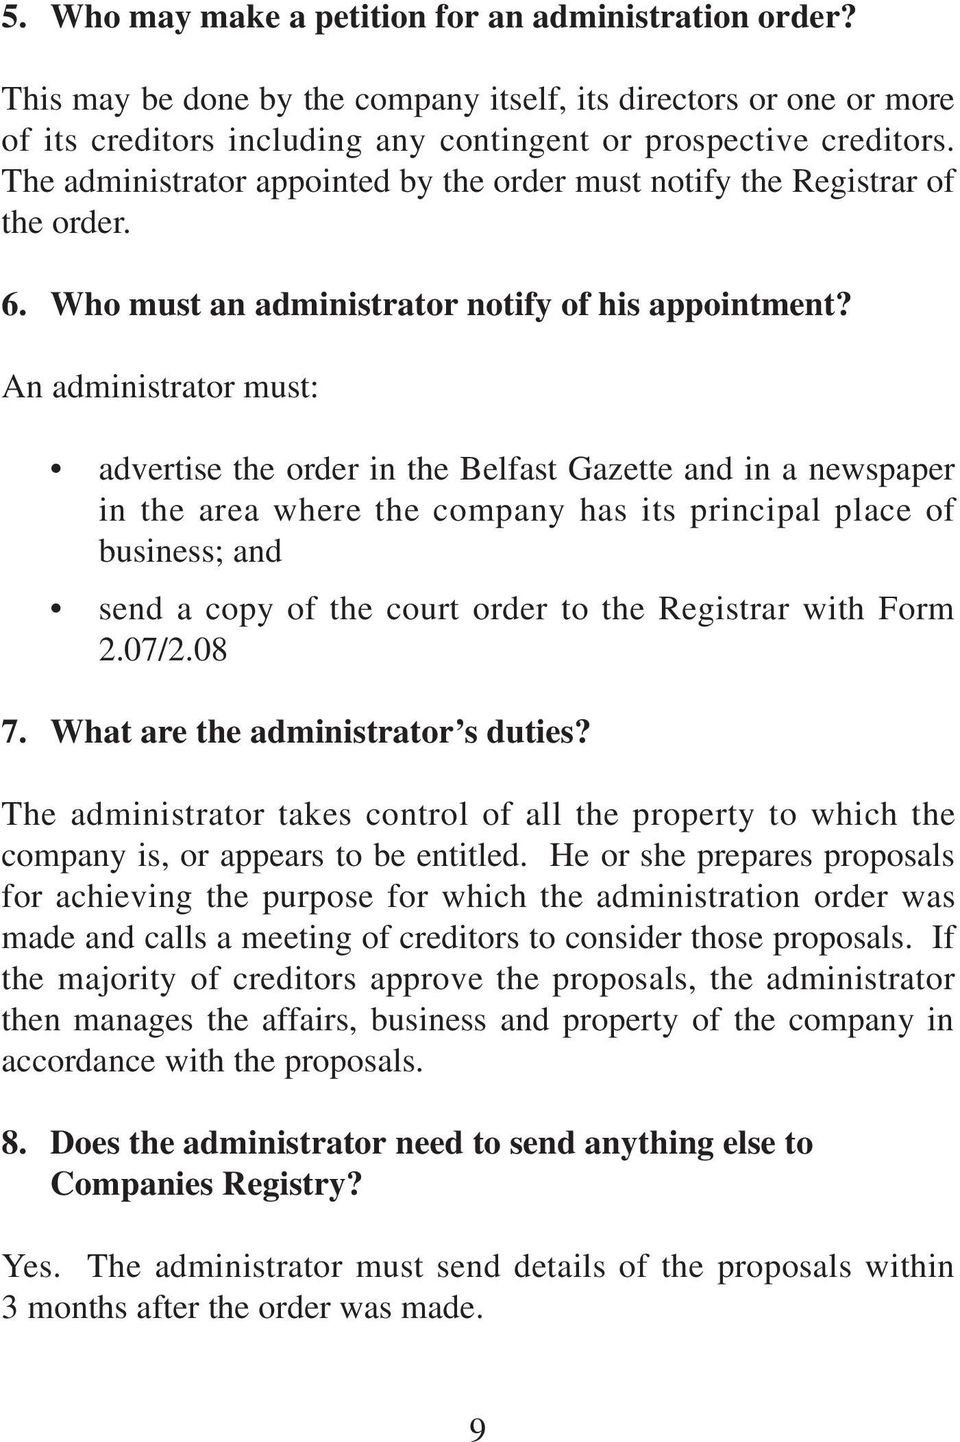 An administrator must: advertise the order in the Belfast Gazette and in a newspaper in the area where the company has its principal place of business; and send a copy of the court order to the